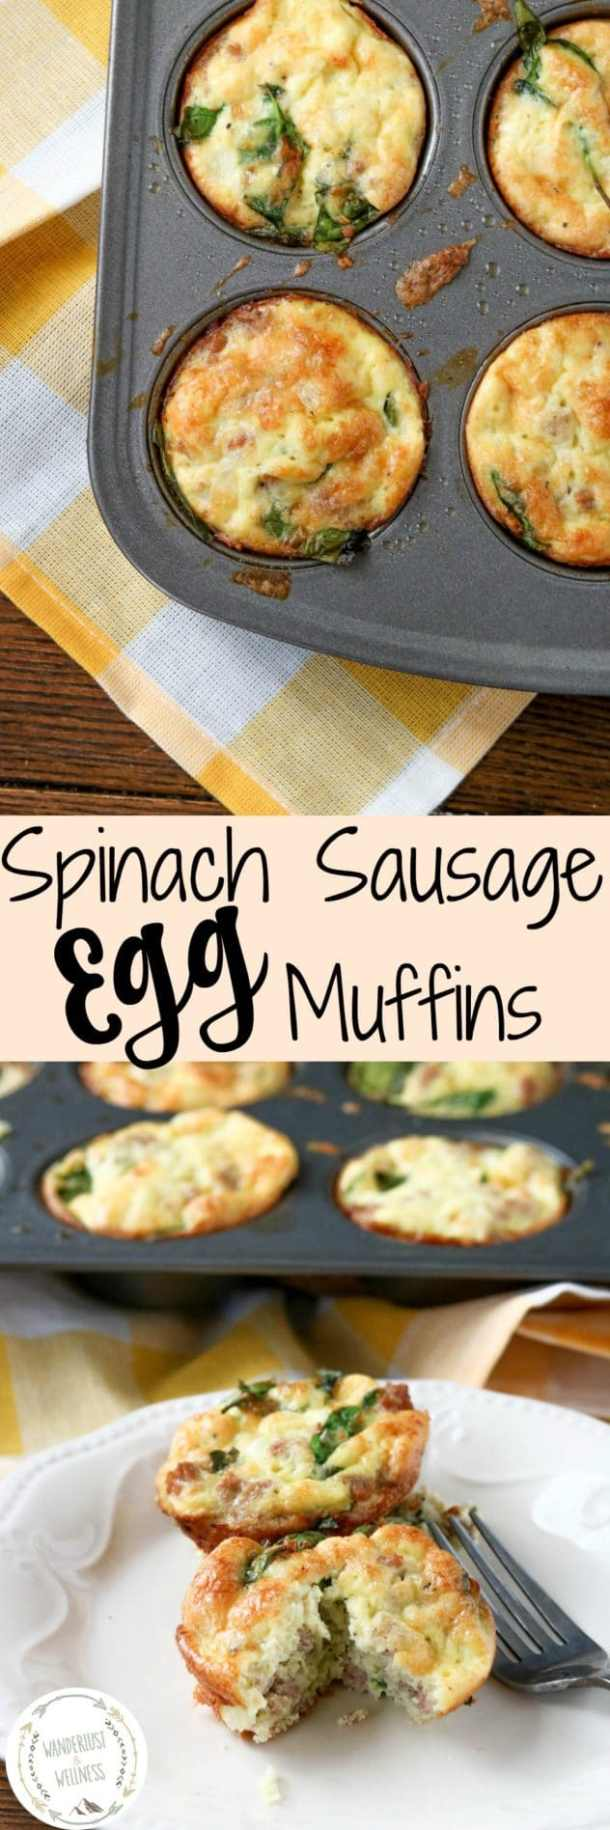 Spinach Sausage Egg Muffins